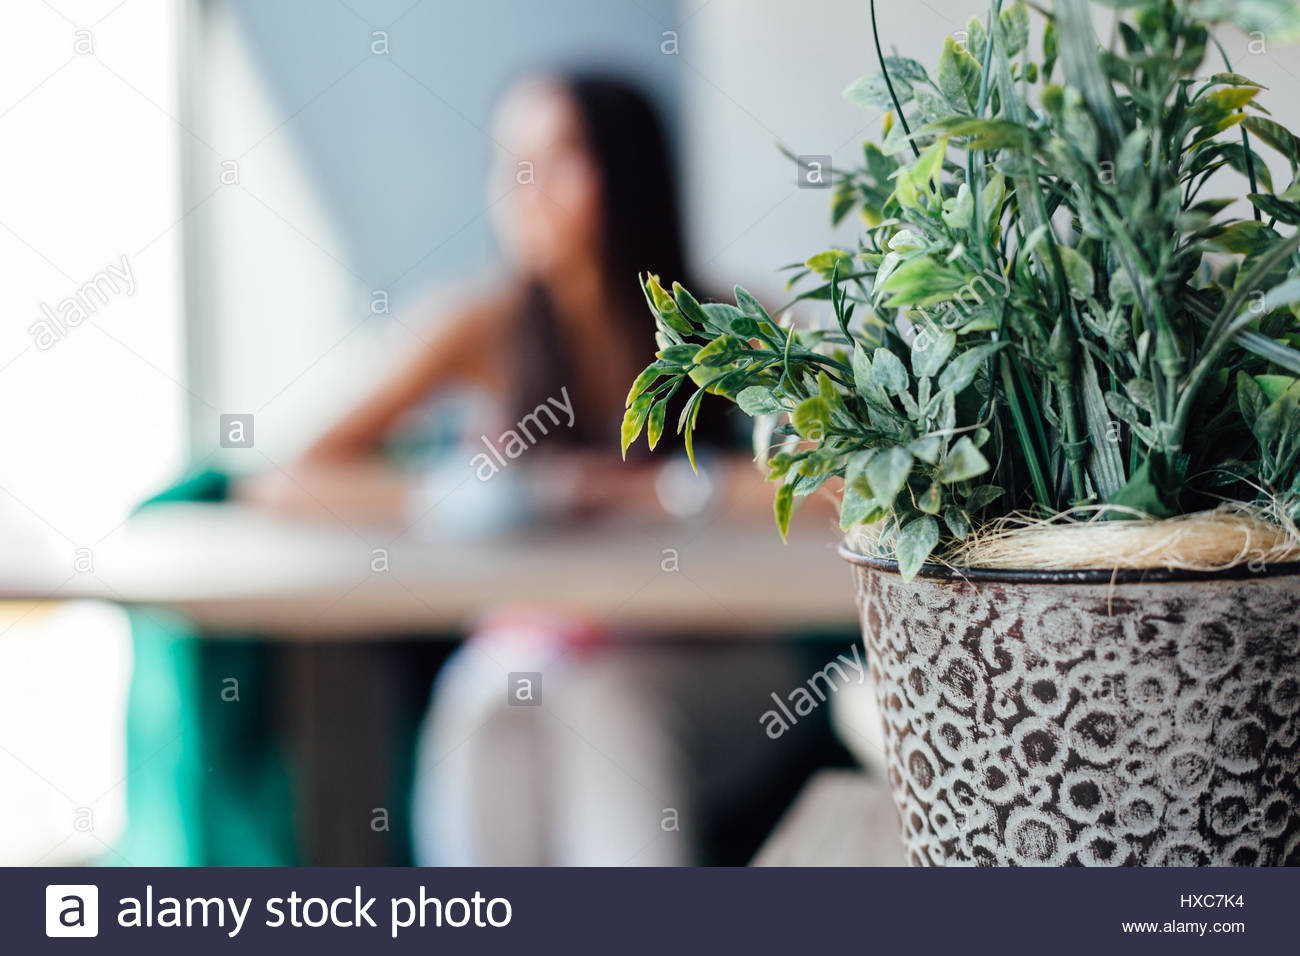 Cafe background with copy space. Young woman in a cafe. - Stock Image